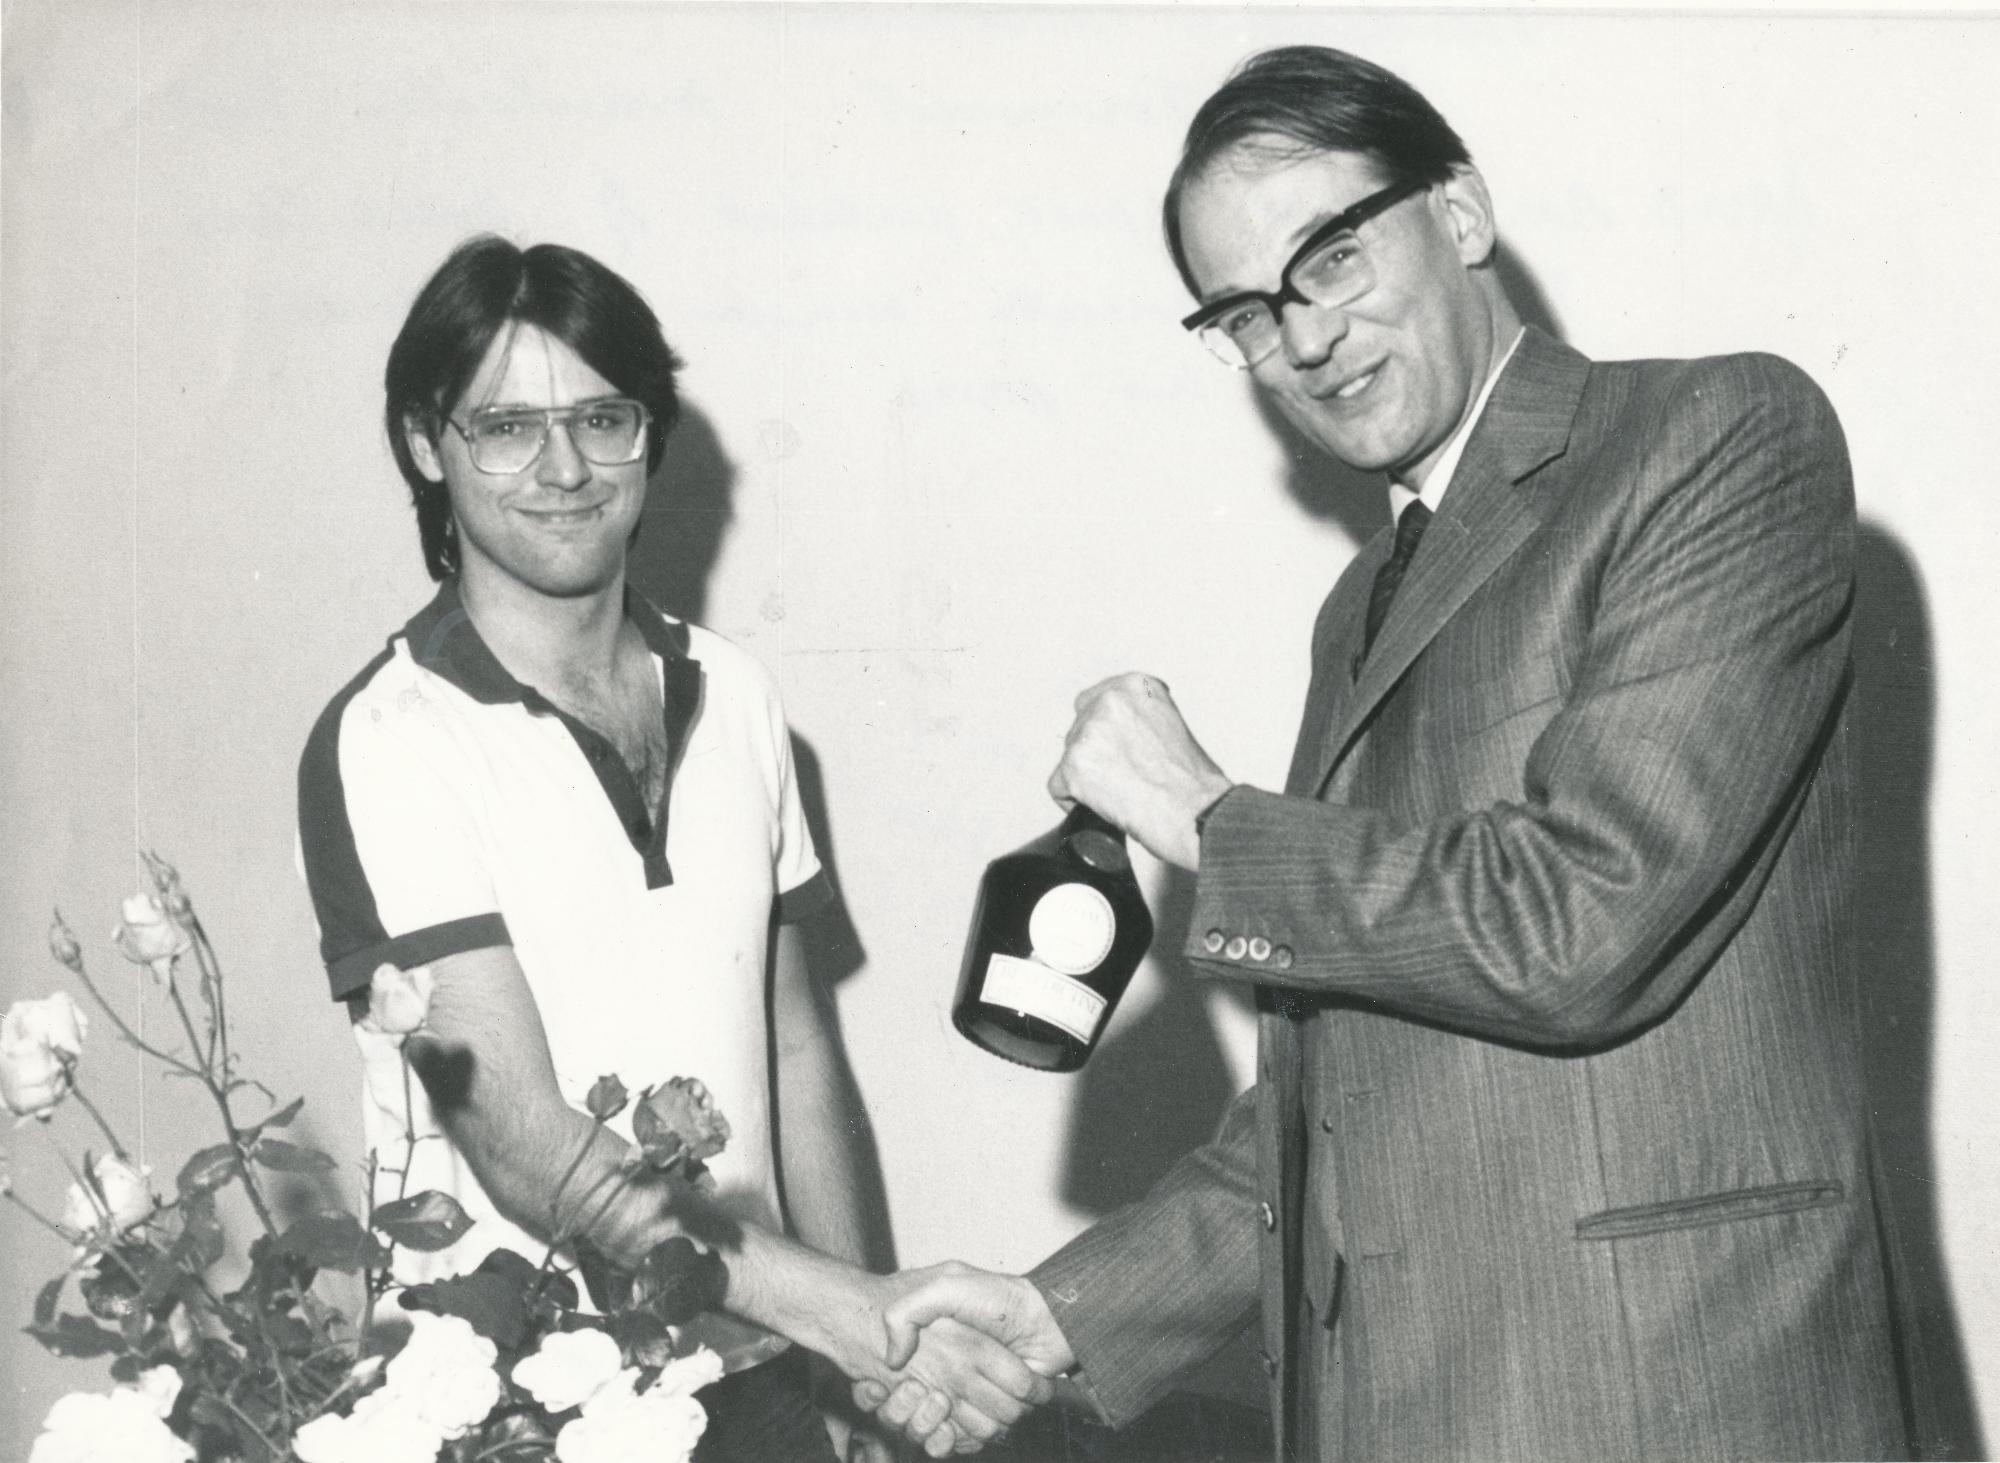 Jim Plaskett with David Anderton OBE at the 1983 Benedictine International (Manchester)